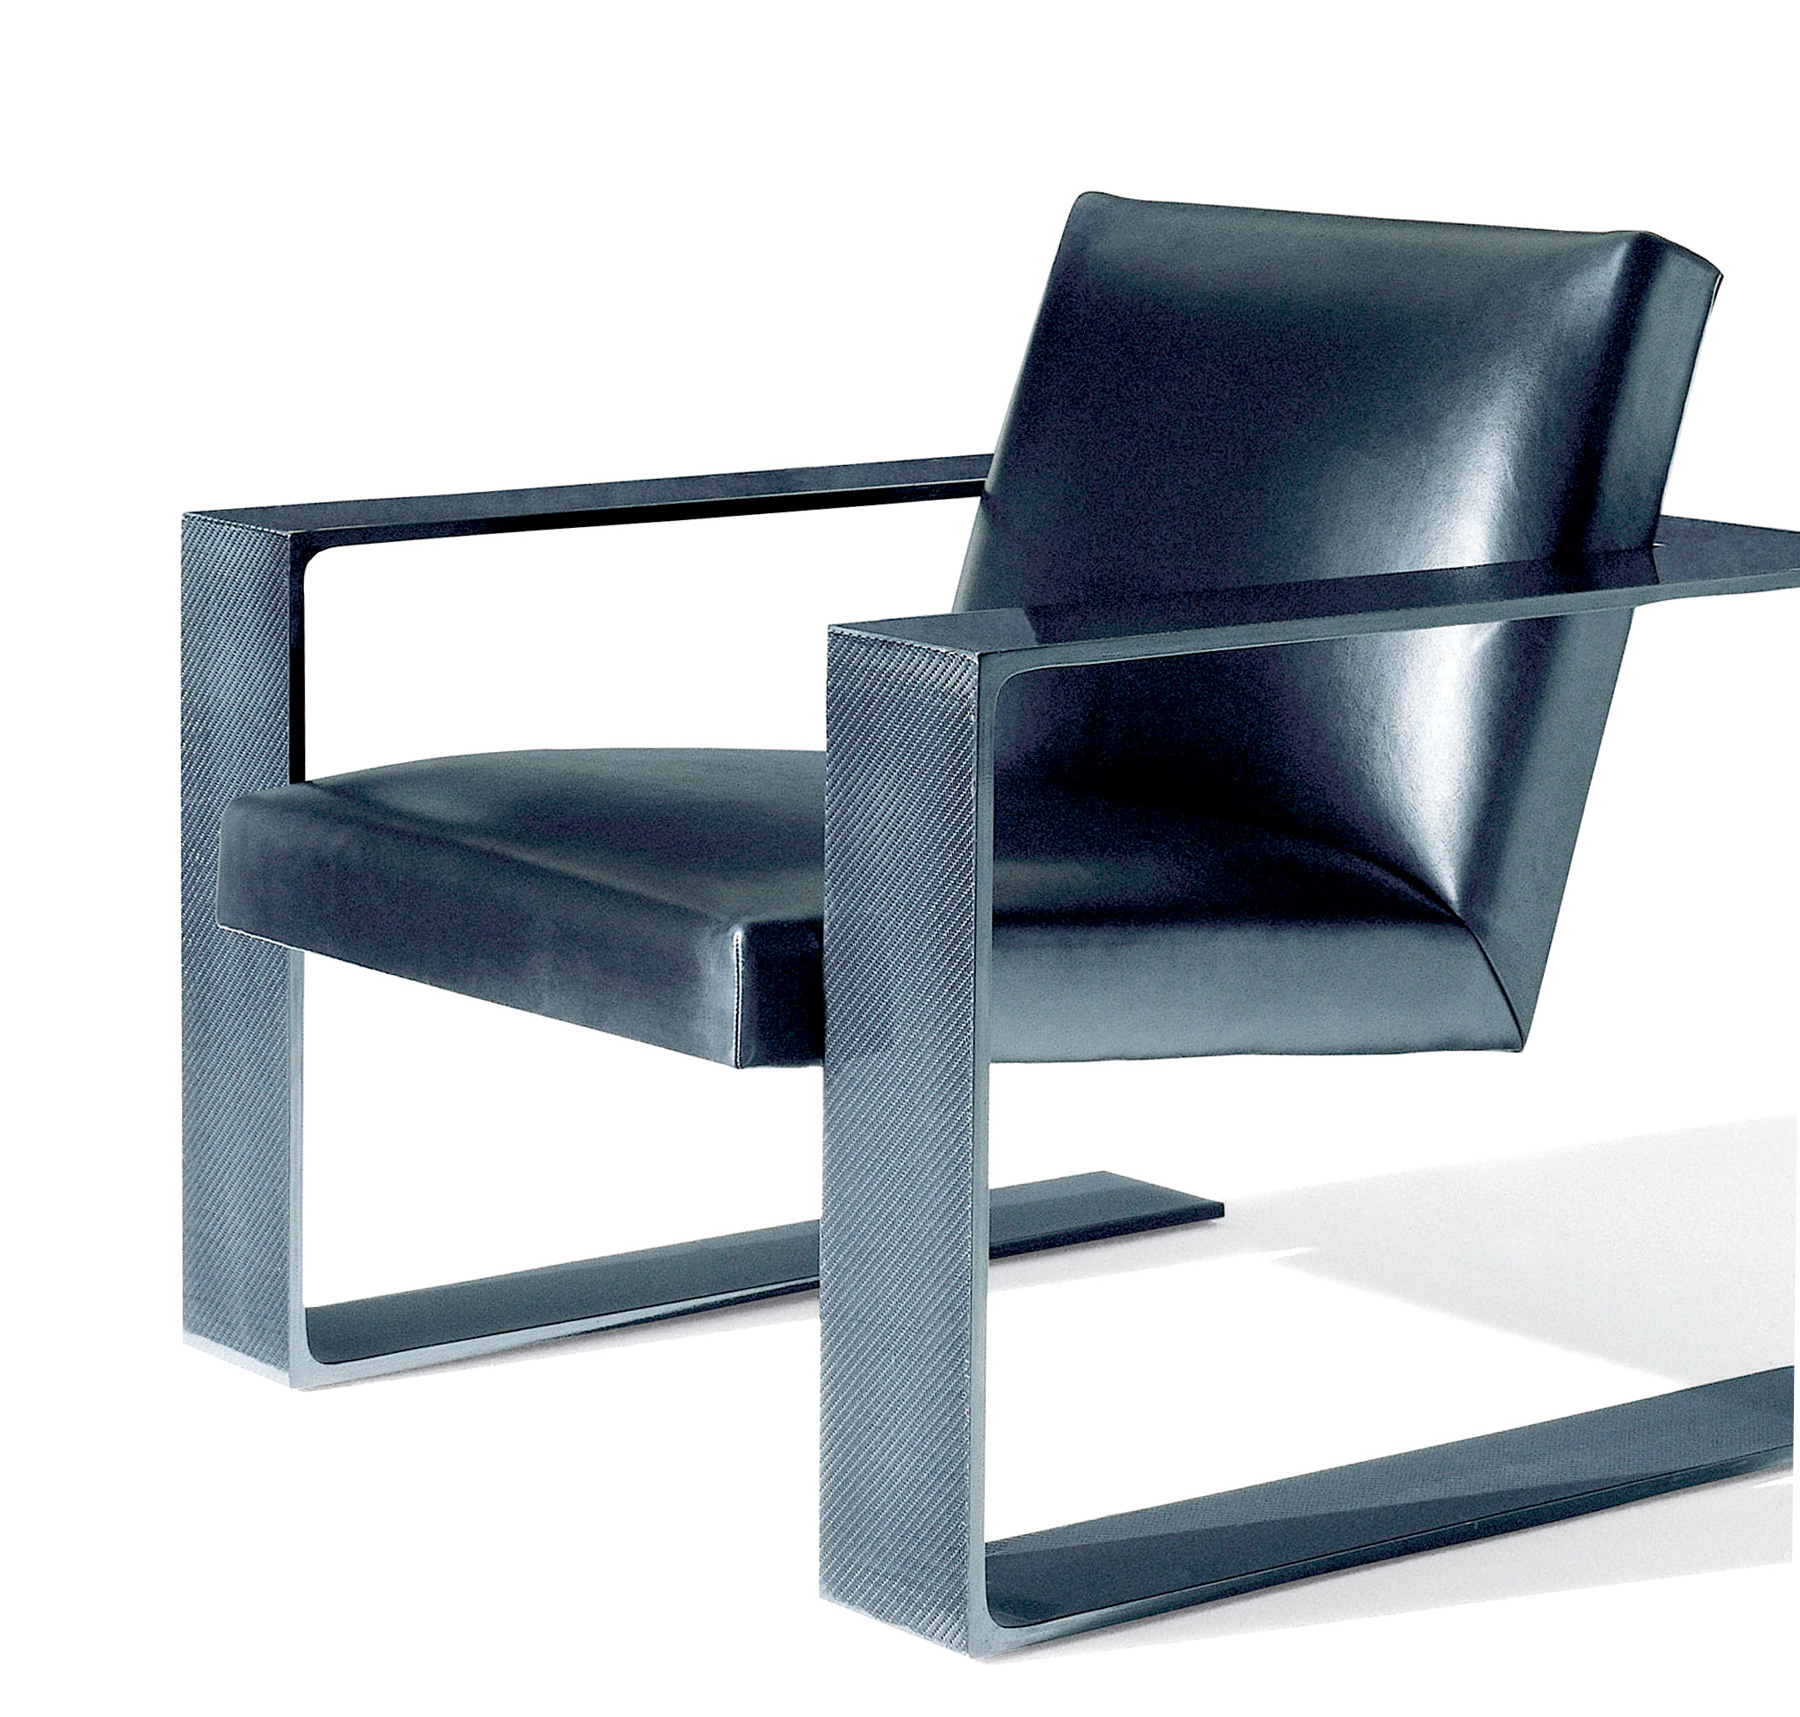 Formed from the same high-tech material that shapes Formula One race cars, the sleek RL-CF1 lounge chair boasts 54 layers of hand-laid tissue carbon